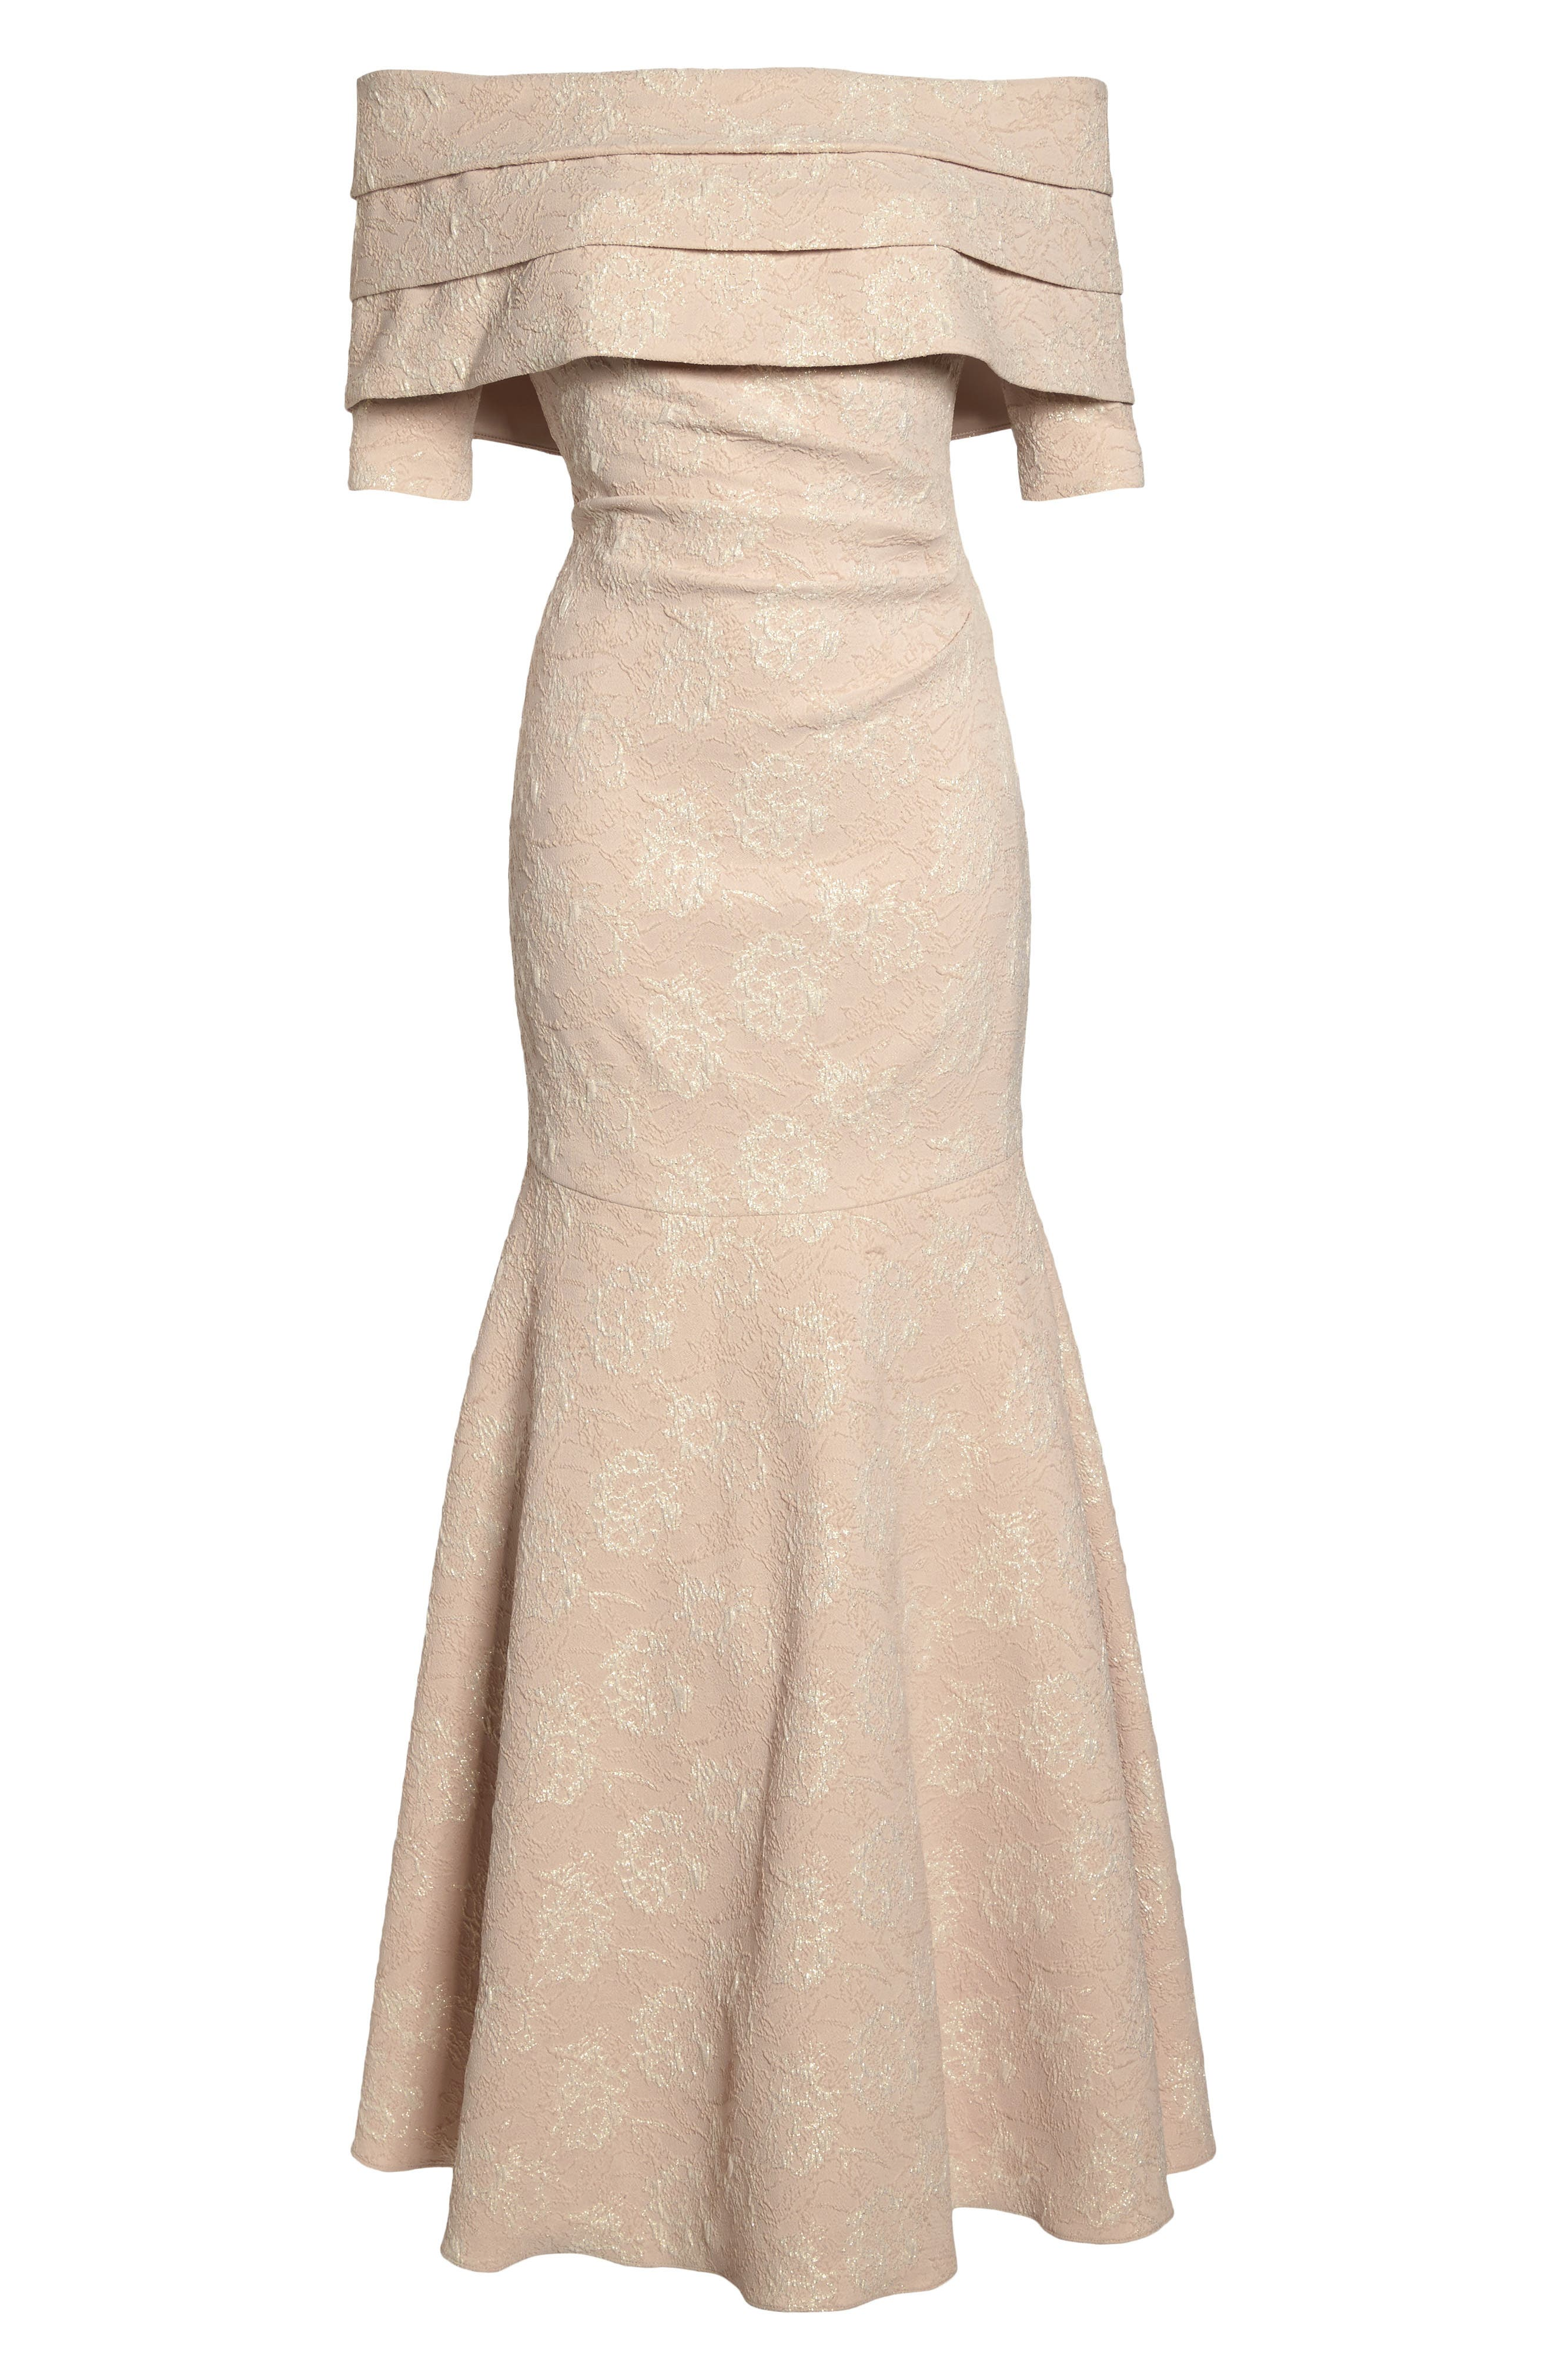 Brocade Off the Shoulder Trumpet Gown,                             Alternate thumbnail 10, color,                             Champagne